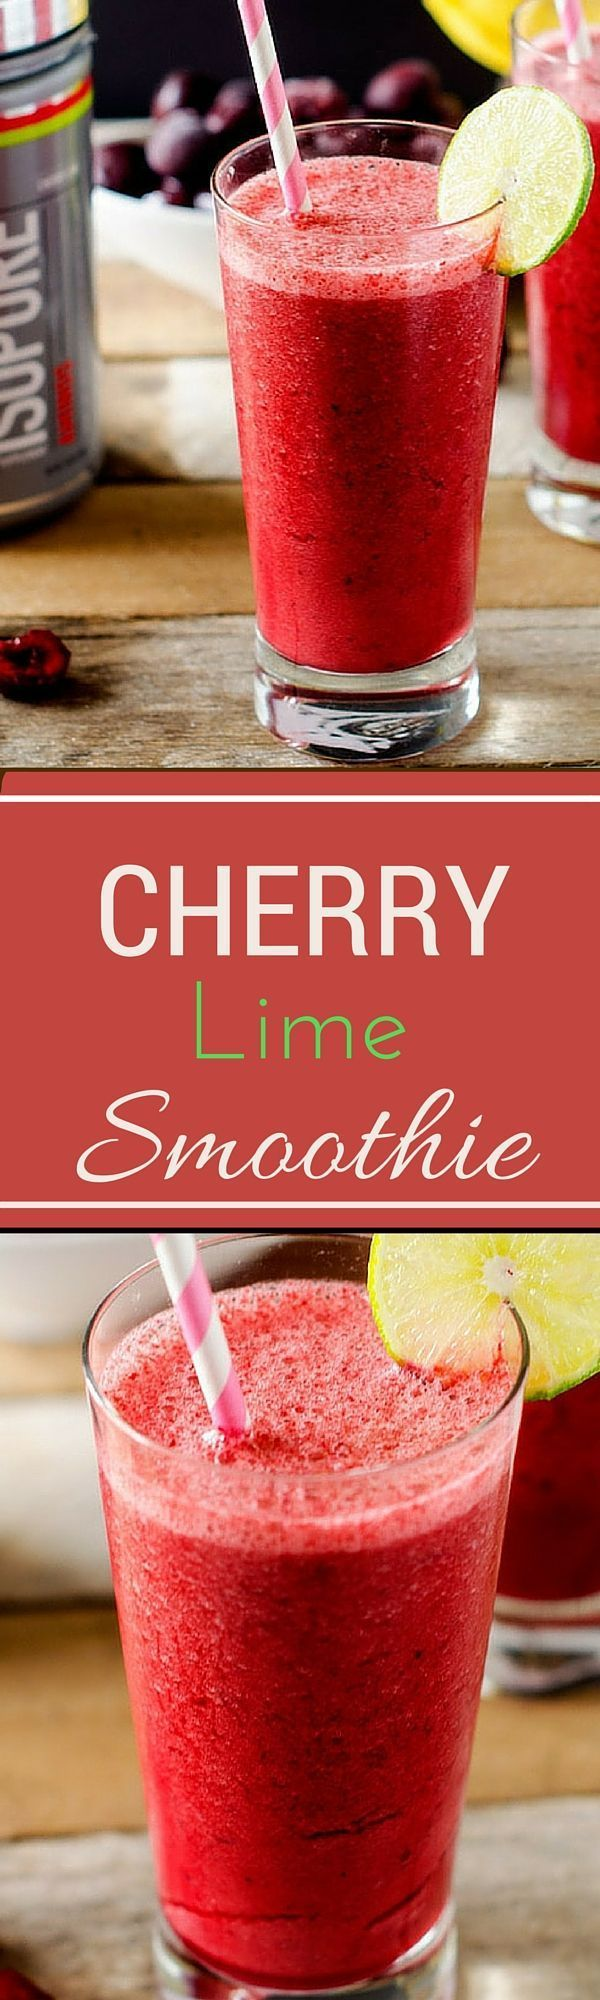 Cherry Lime Smoothie - http://WendyPolisi.com #behindthemuscle #isopure #sponsored /isopure/